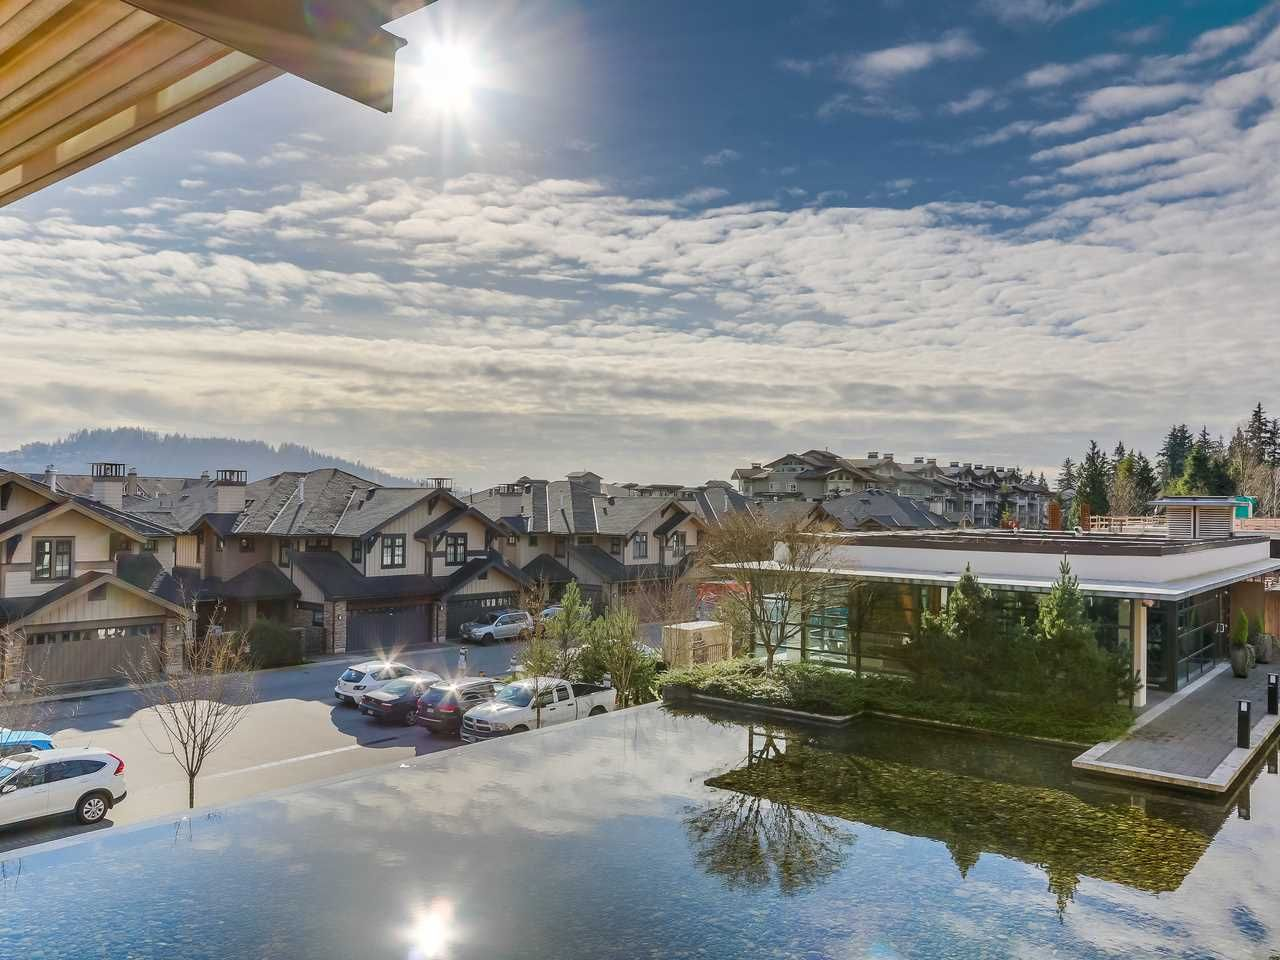 """Main Photo: 217 3606 ALDERCREST Drive in North Vancouver: Roche Point Condo for sale in """"DESTINY AT RAVENWOODS"""" : MLS®# R2065350"""